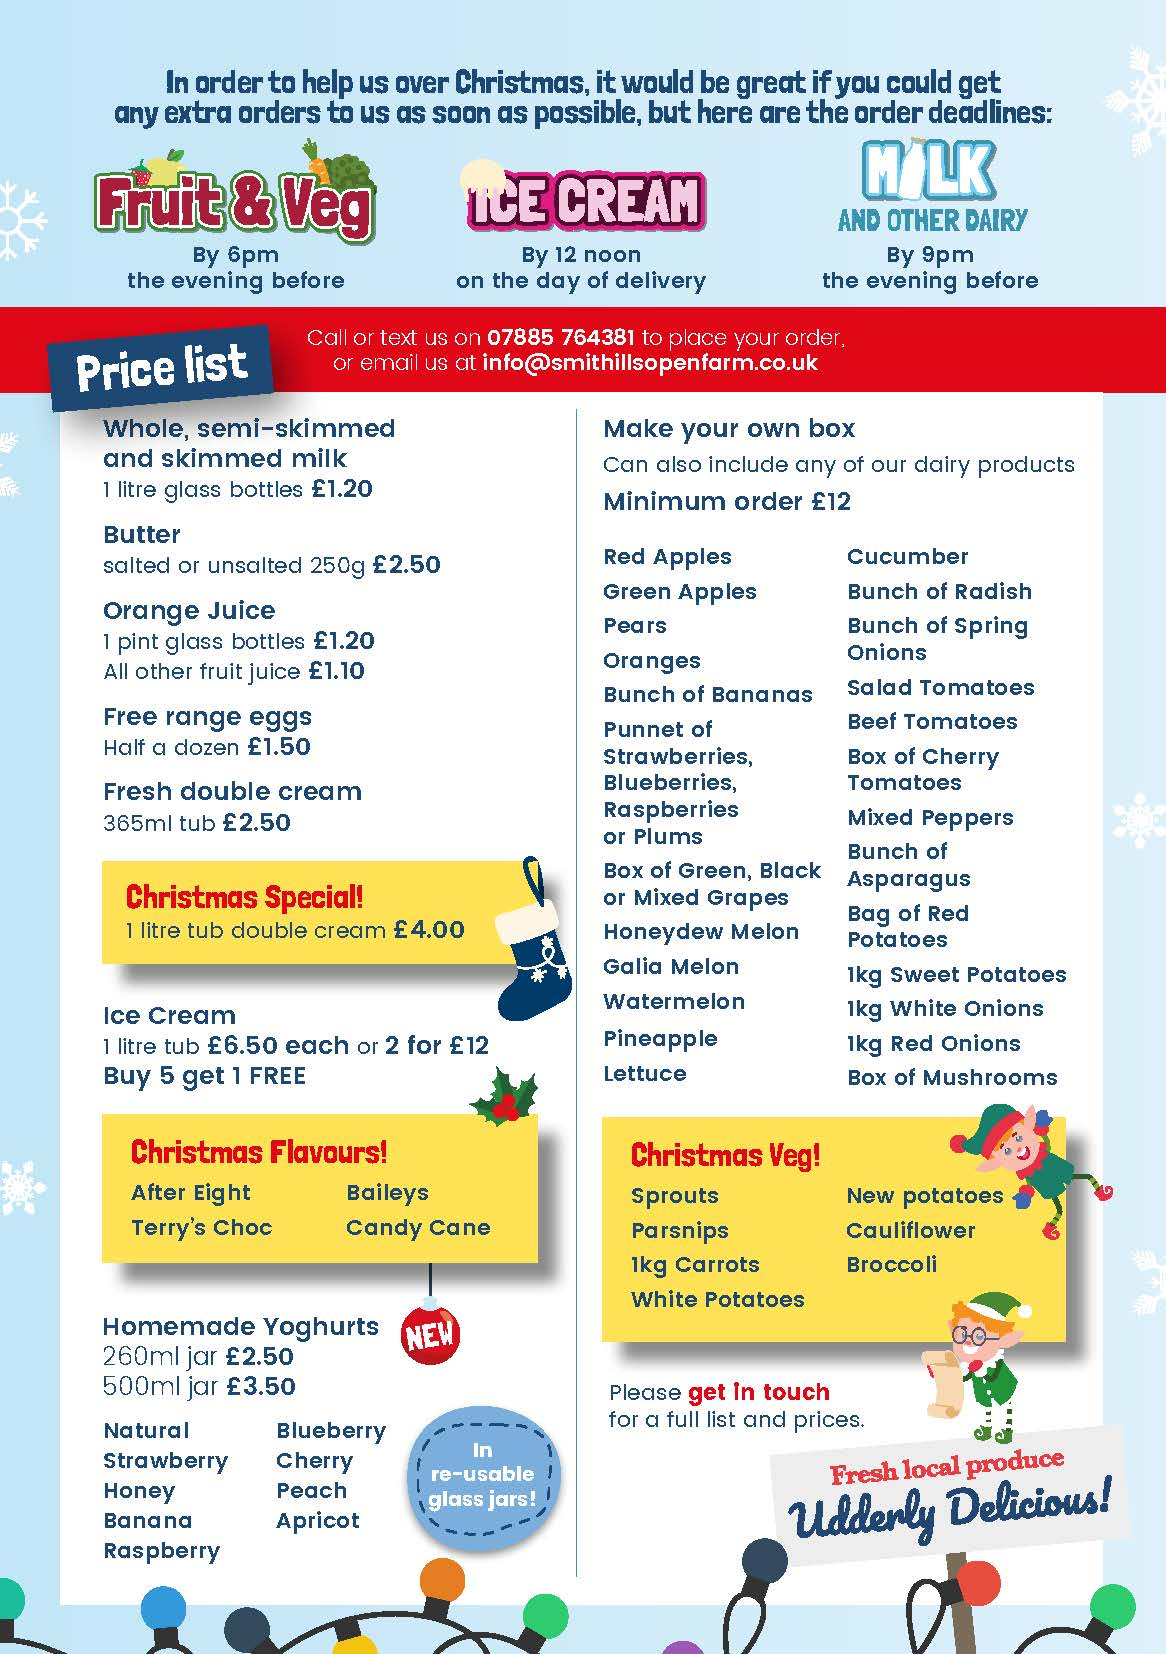 Smithills - Xmas 2020 Deliveries Flyer for web_Page_2